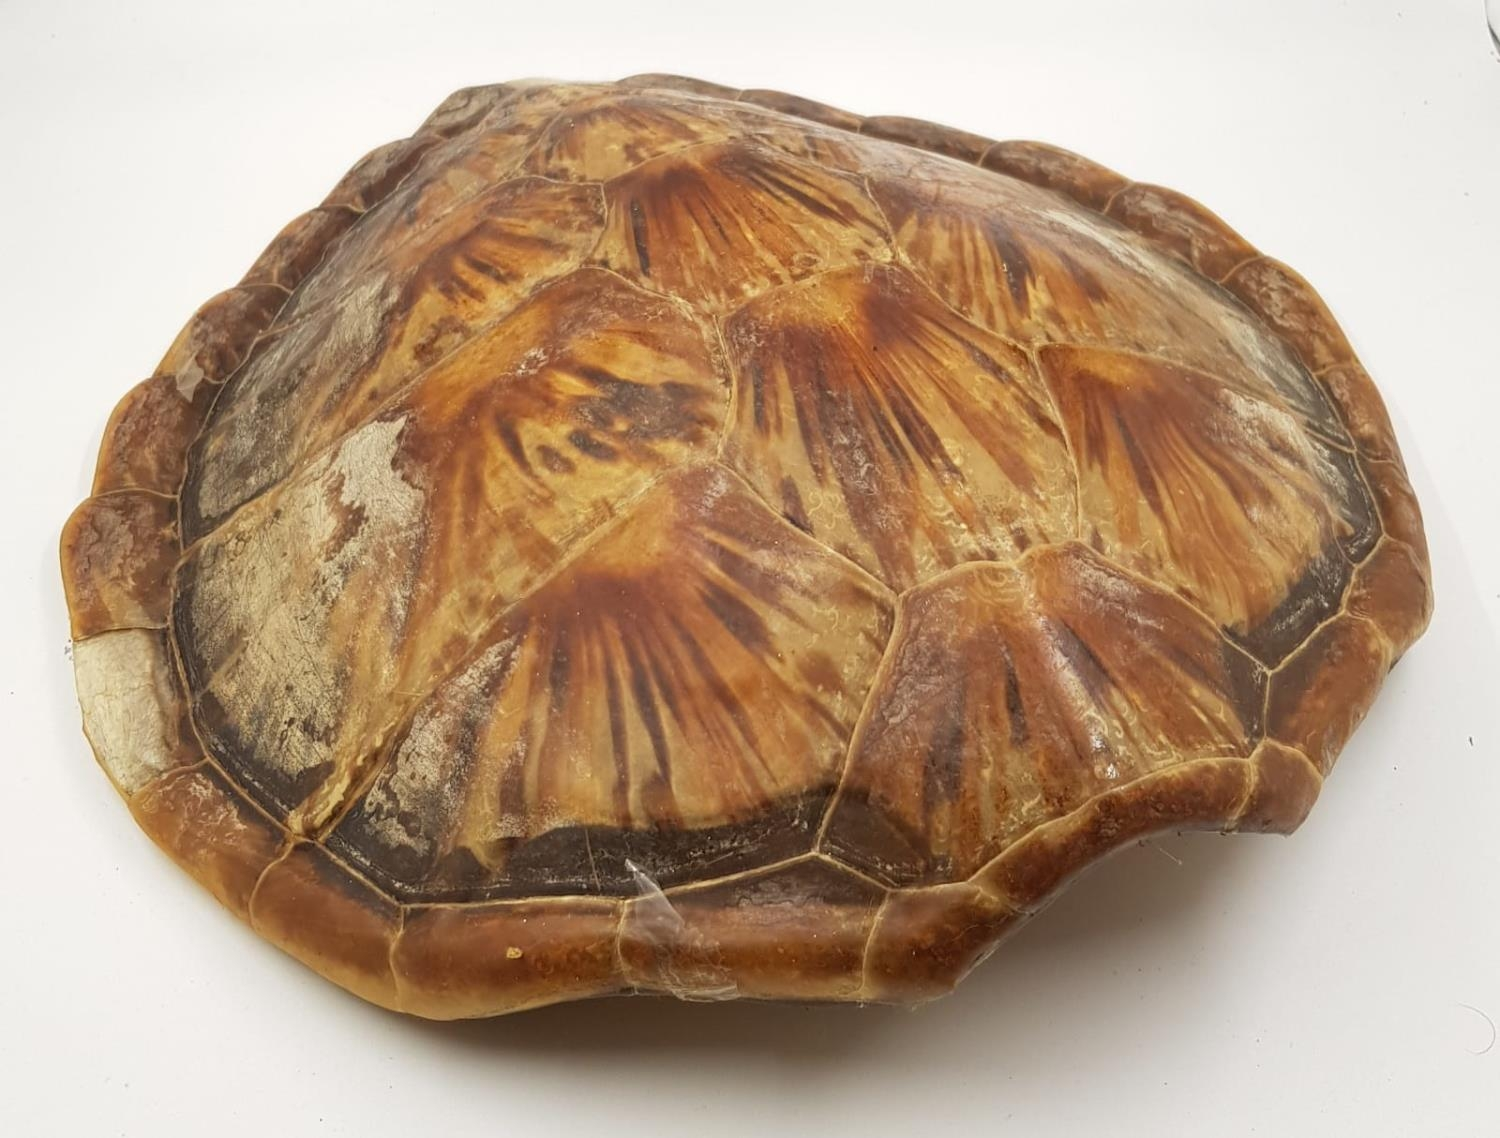 A large antique turtle shell. There is some wear and tear (age related?) marks on the shell.